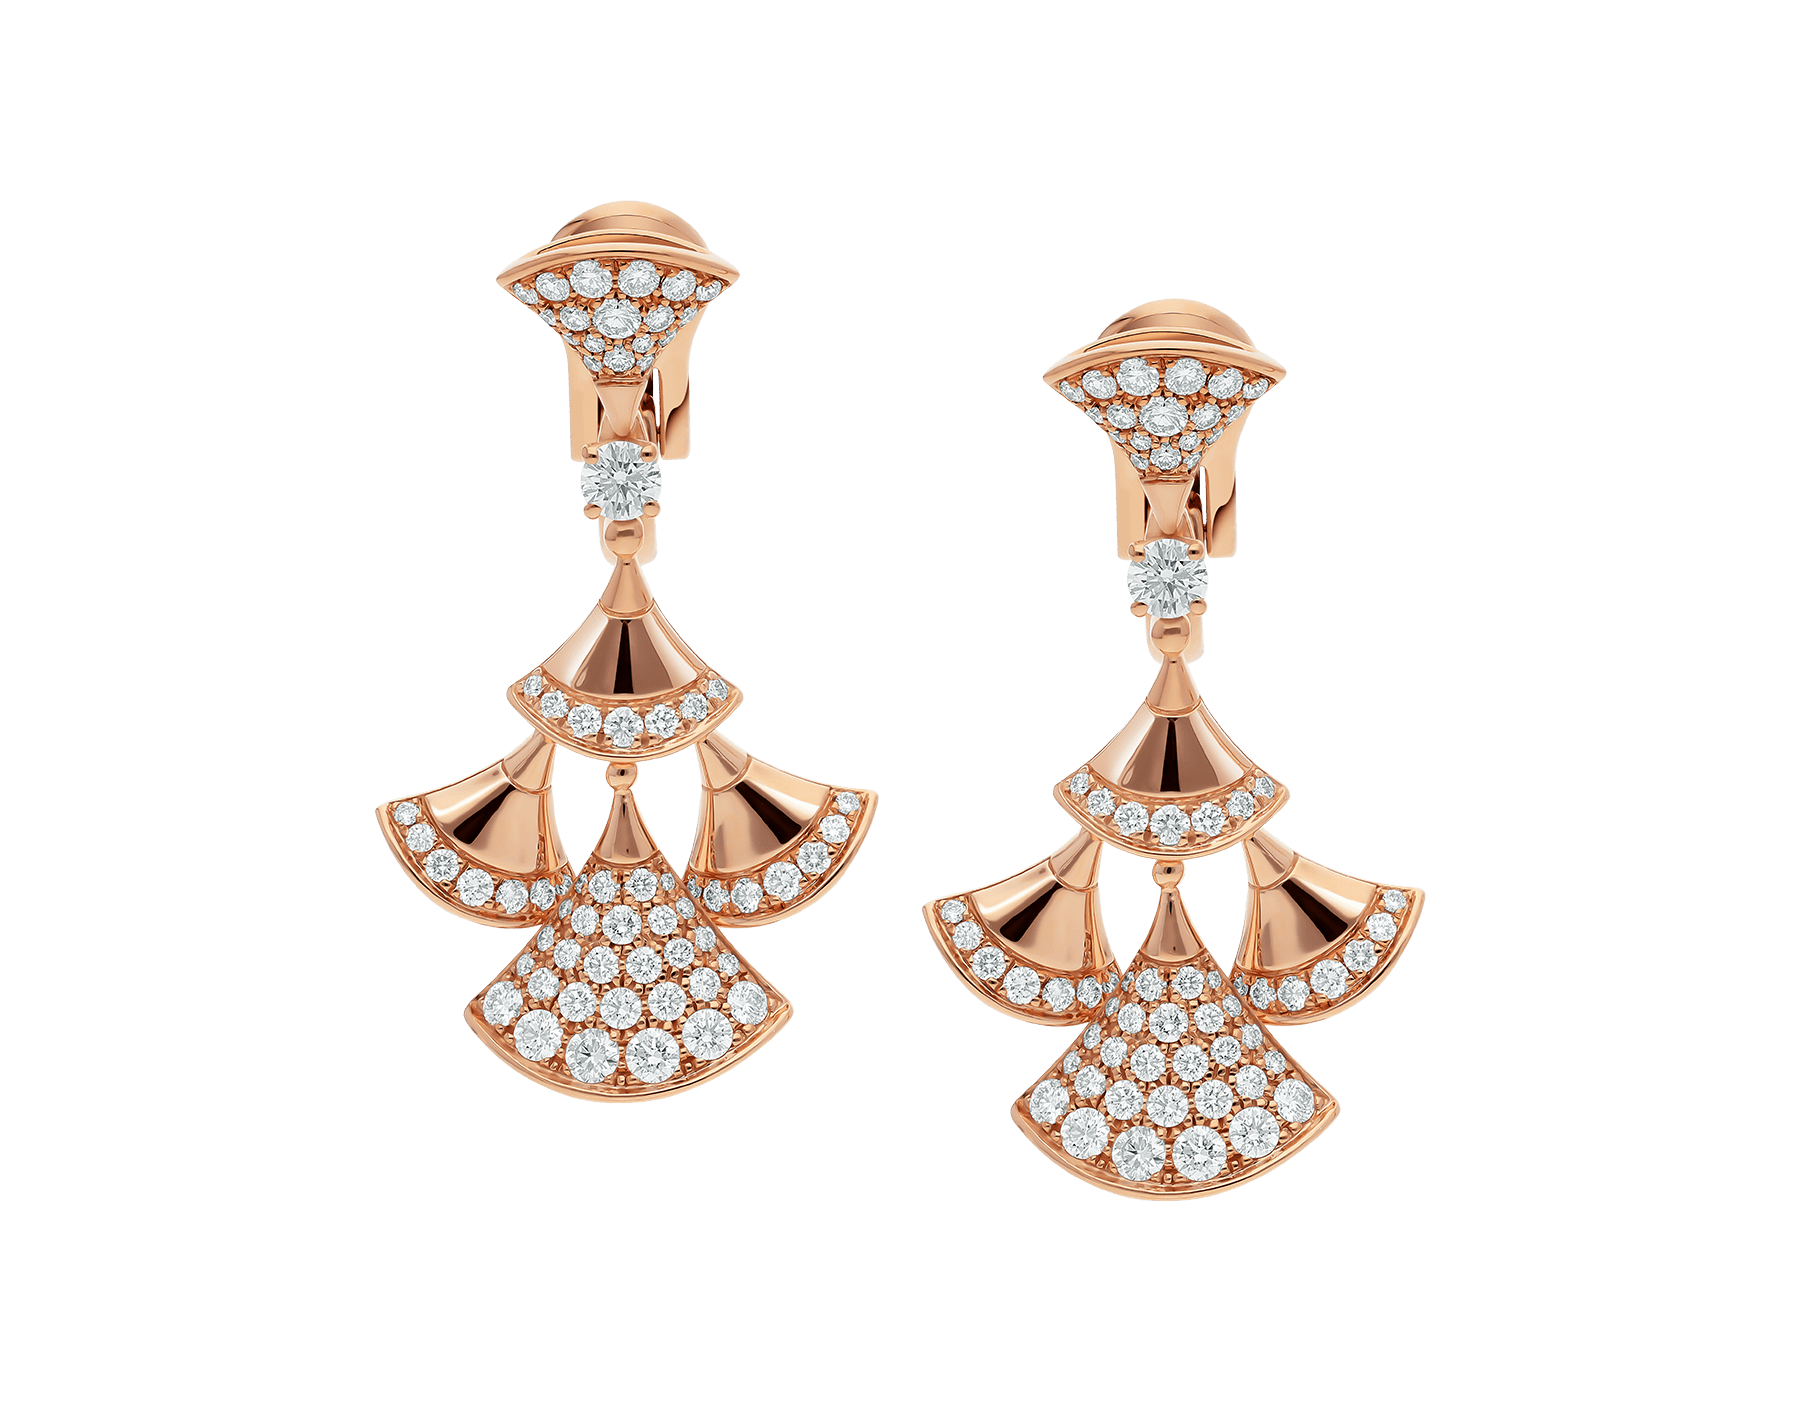 DIVAS' DREAM earrings in 18 kt rose gold set with a diamond and pavé diamonds. 352810 image 1